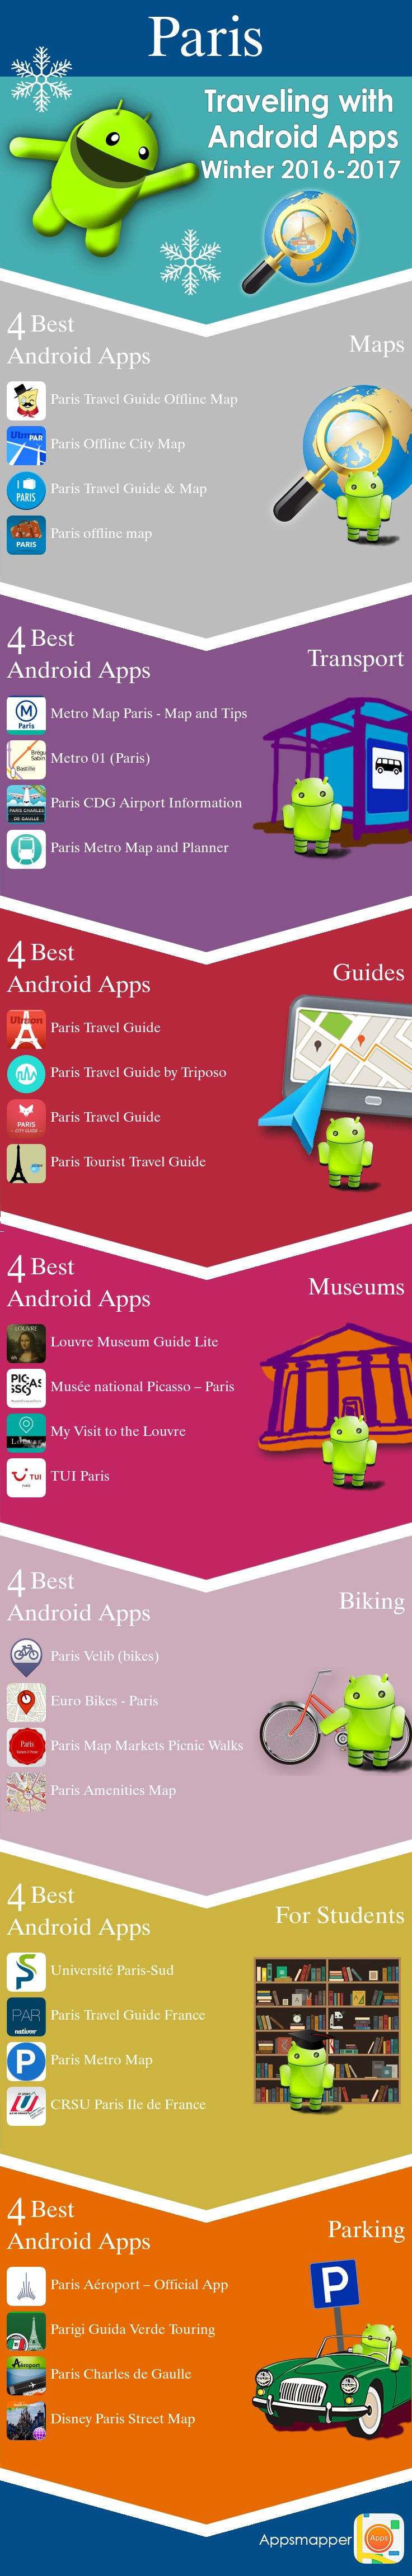 Paris Android apps: Travel Guides, Maps, Transportation, Biking, Museums, Parking, Sport and apps for Students.